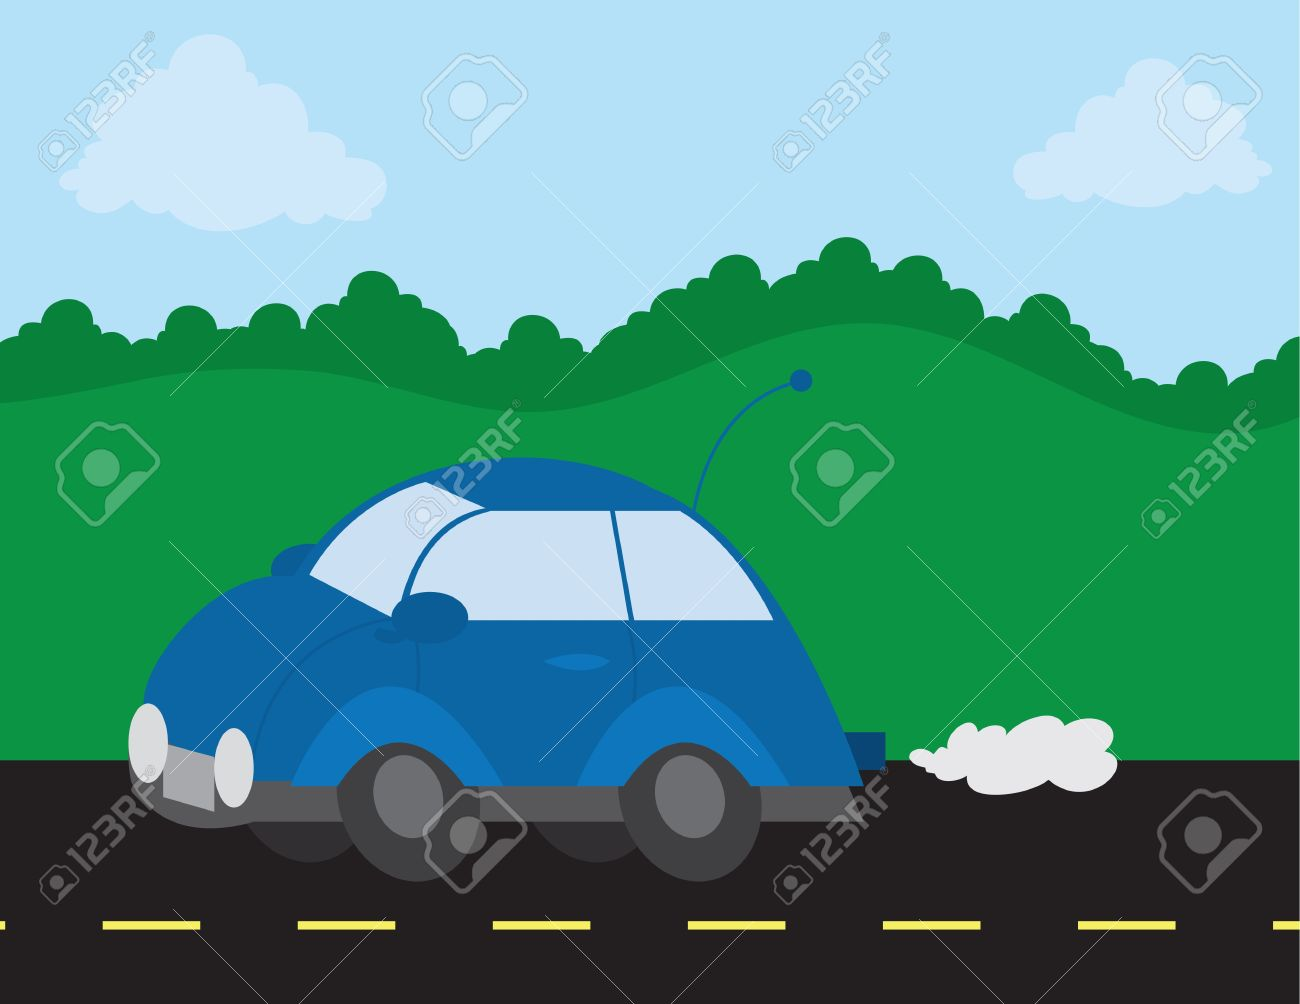 Outside Scene With Car On The Road Royalty Free Cliparts, Vectors.